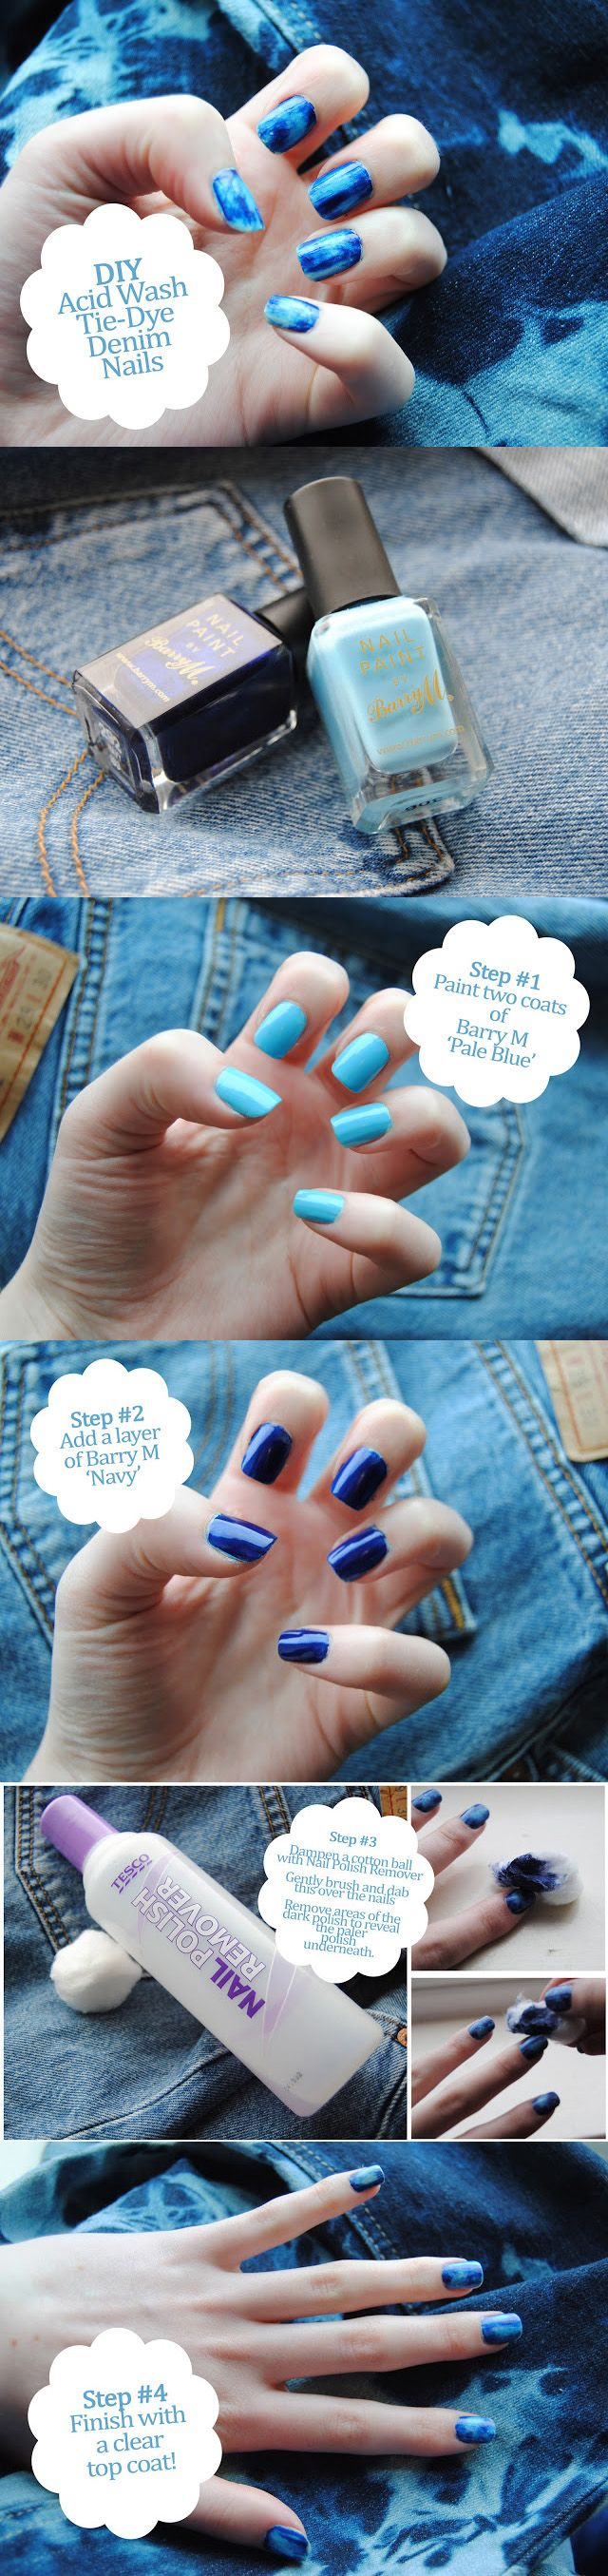 DIY Acid Wash Denim Nails